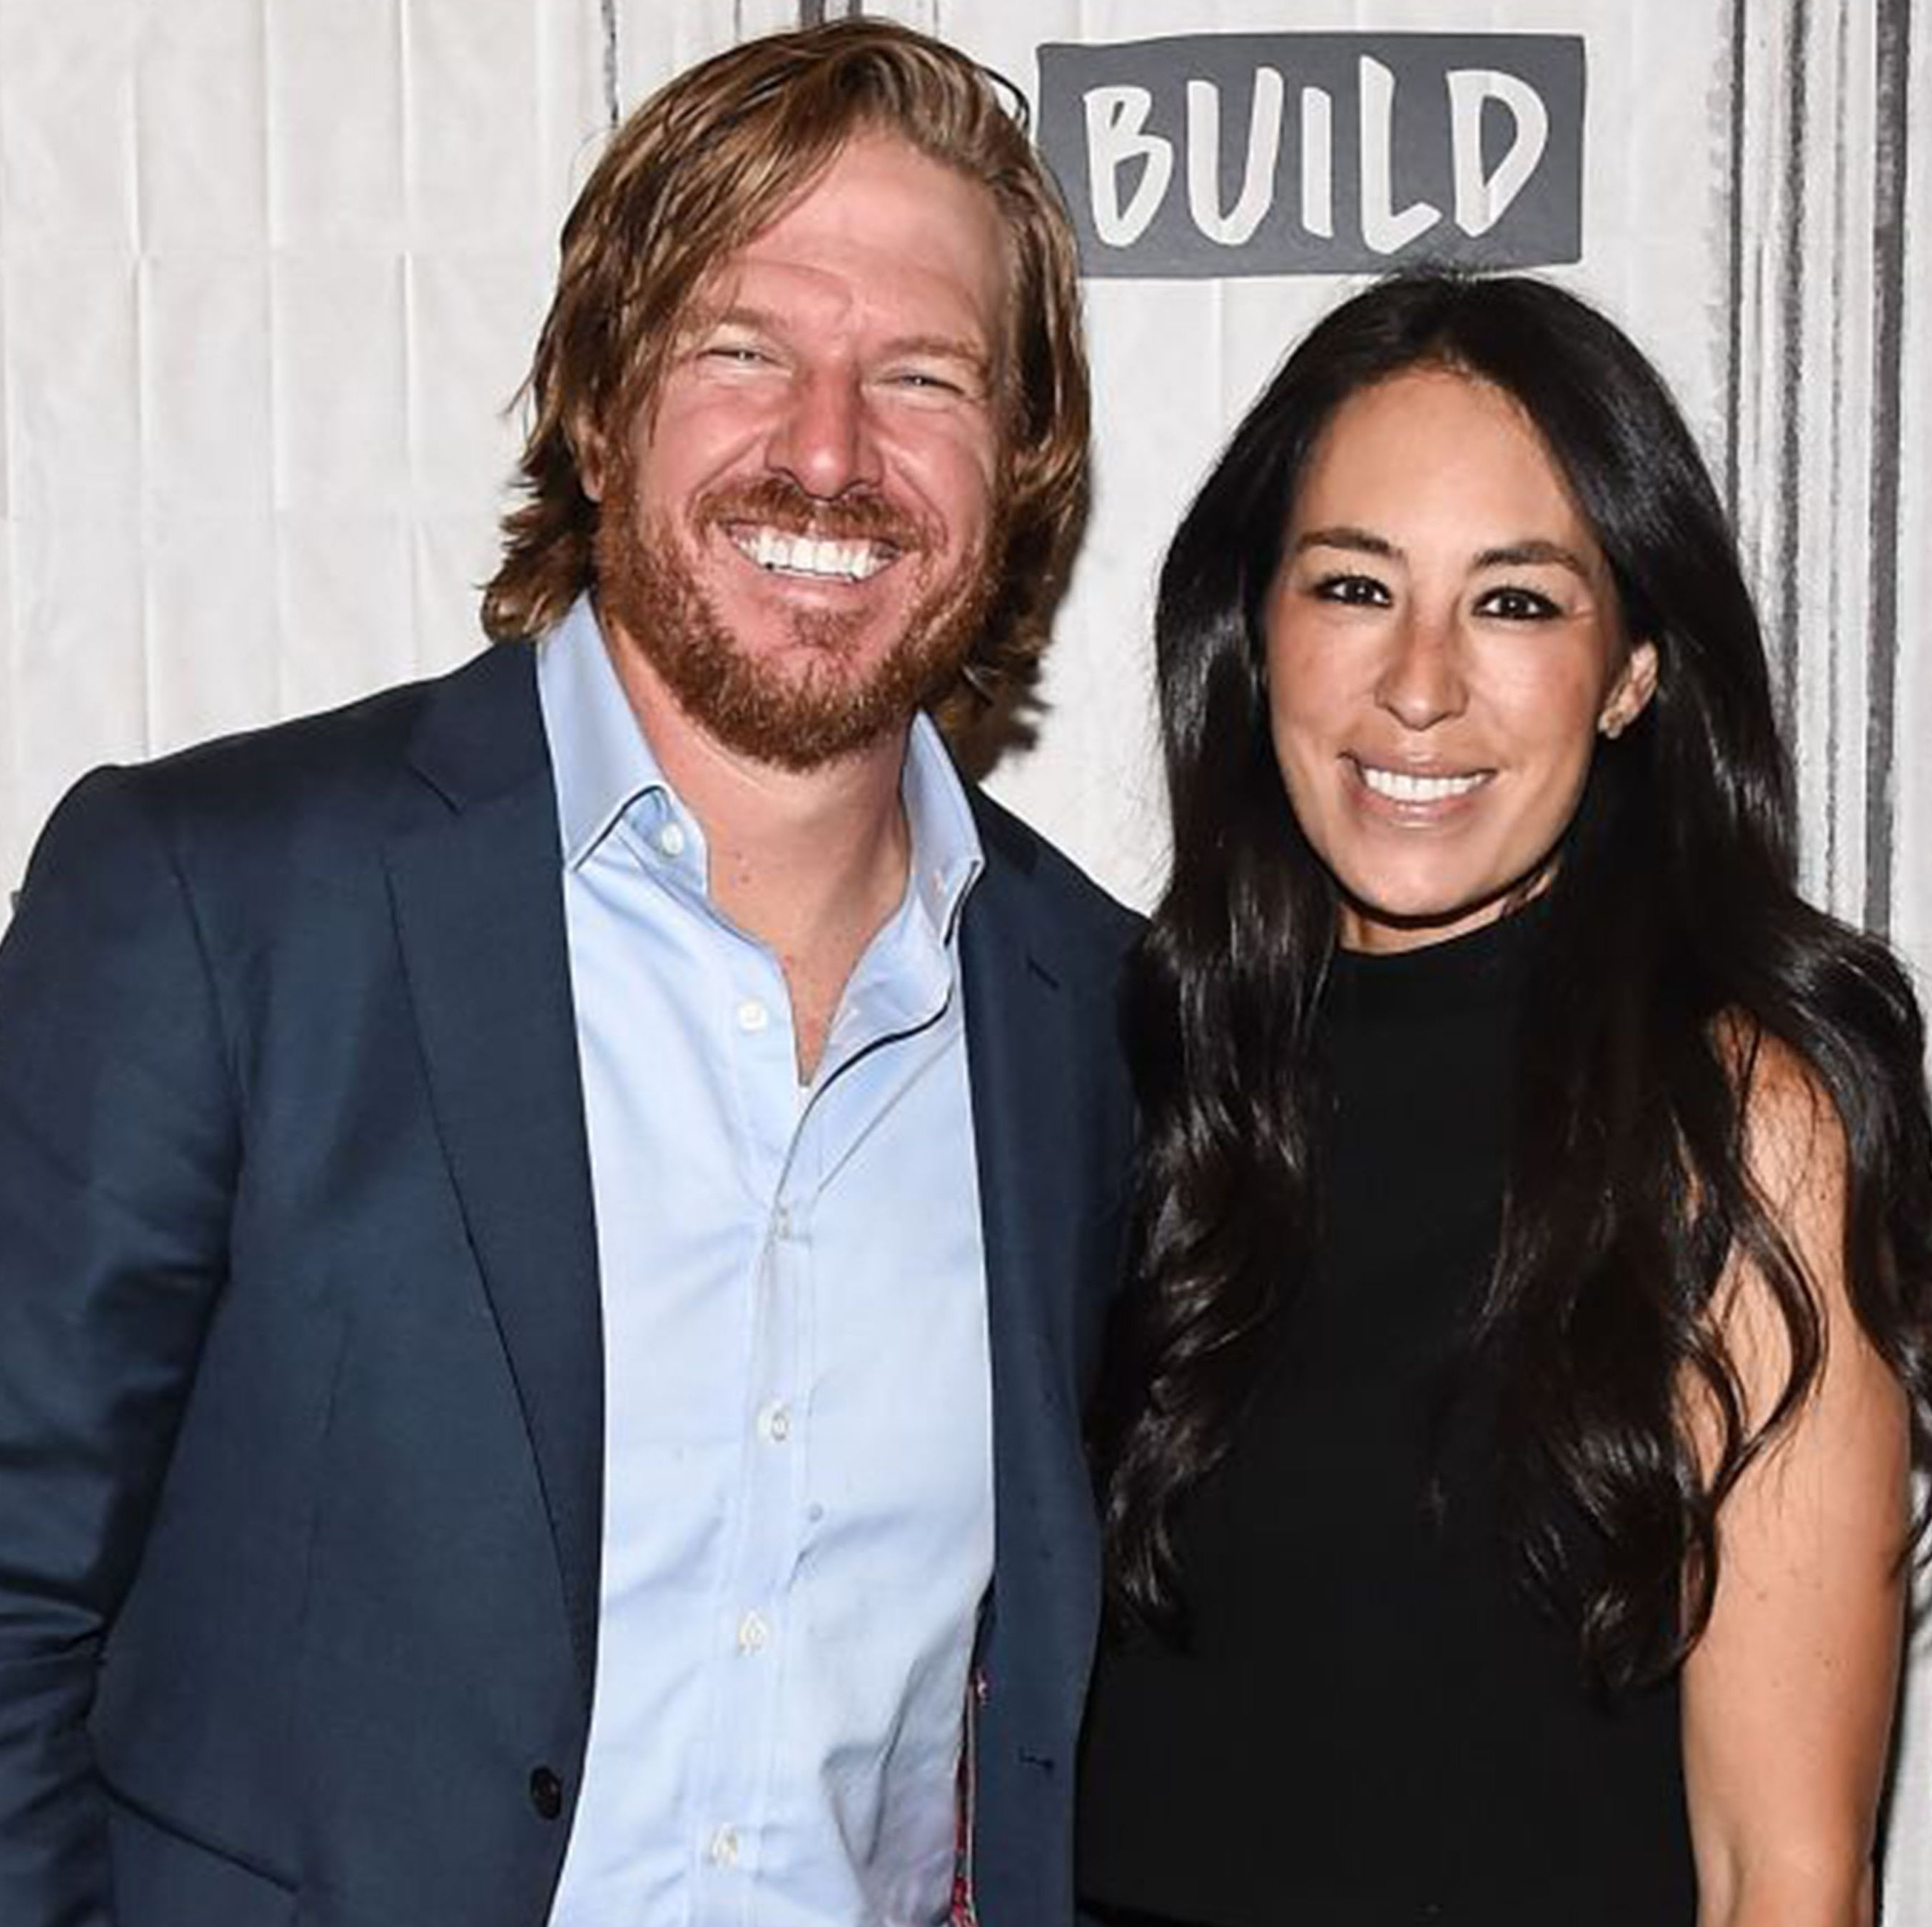 Chip Gaines Confesses His Biggest Parenting Mistakes—And What He's Learned from Them